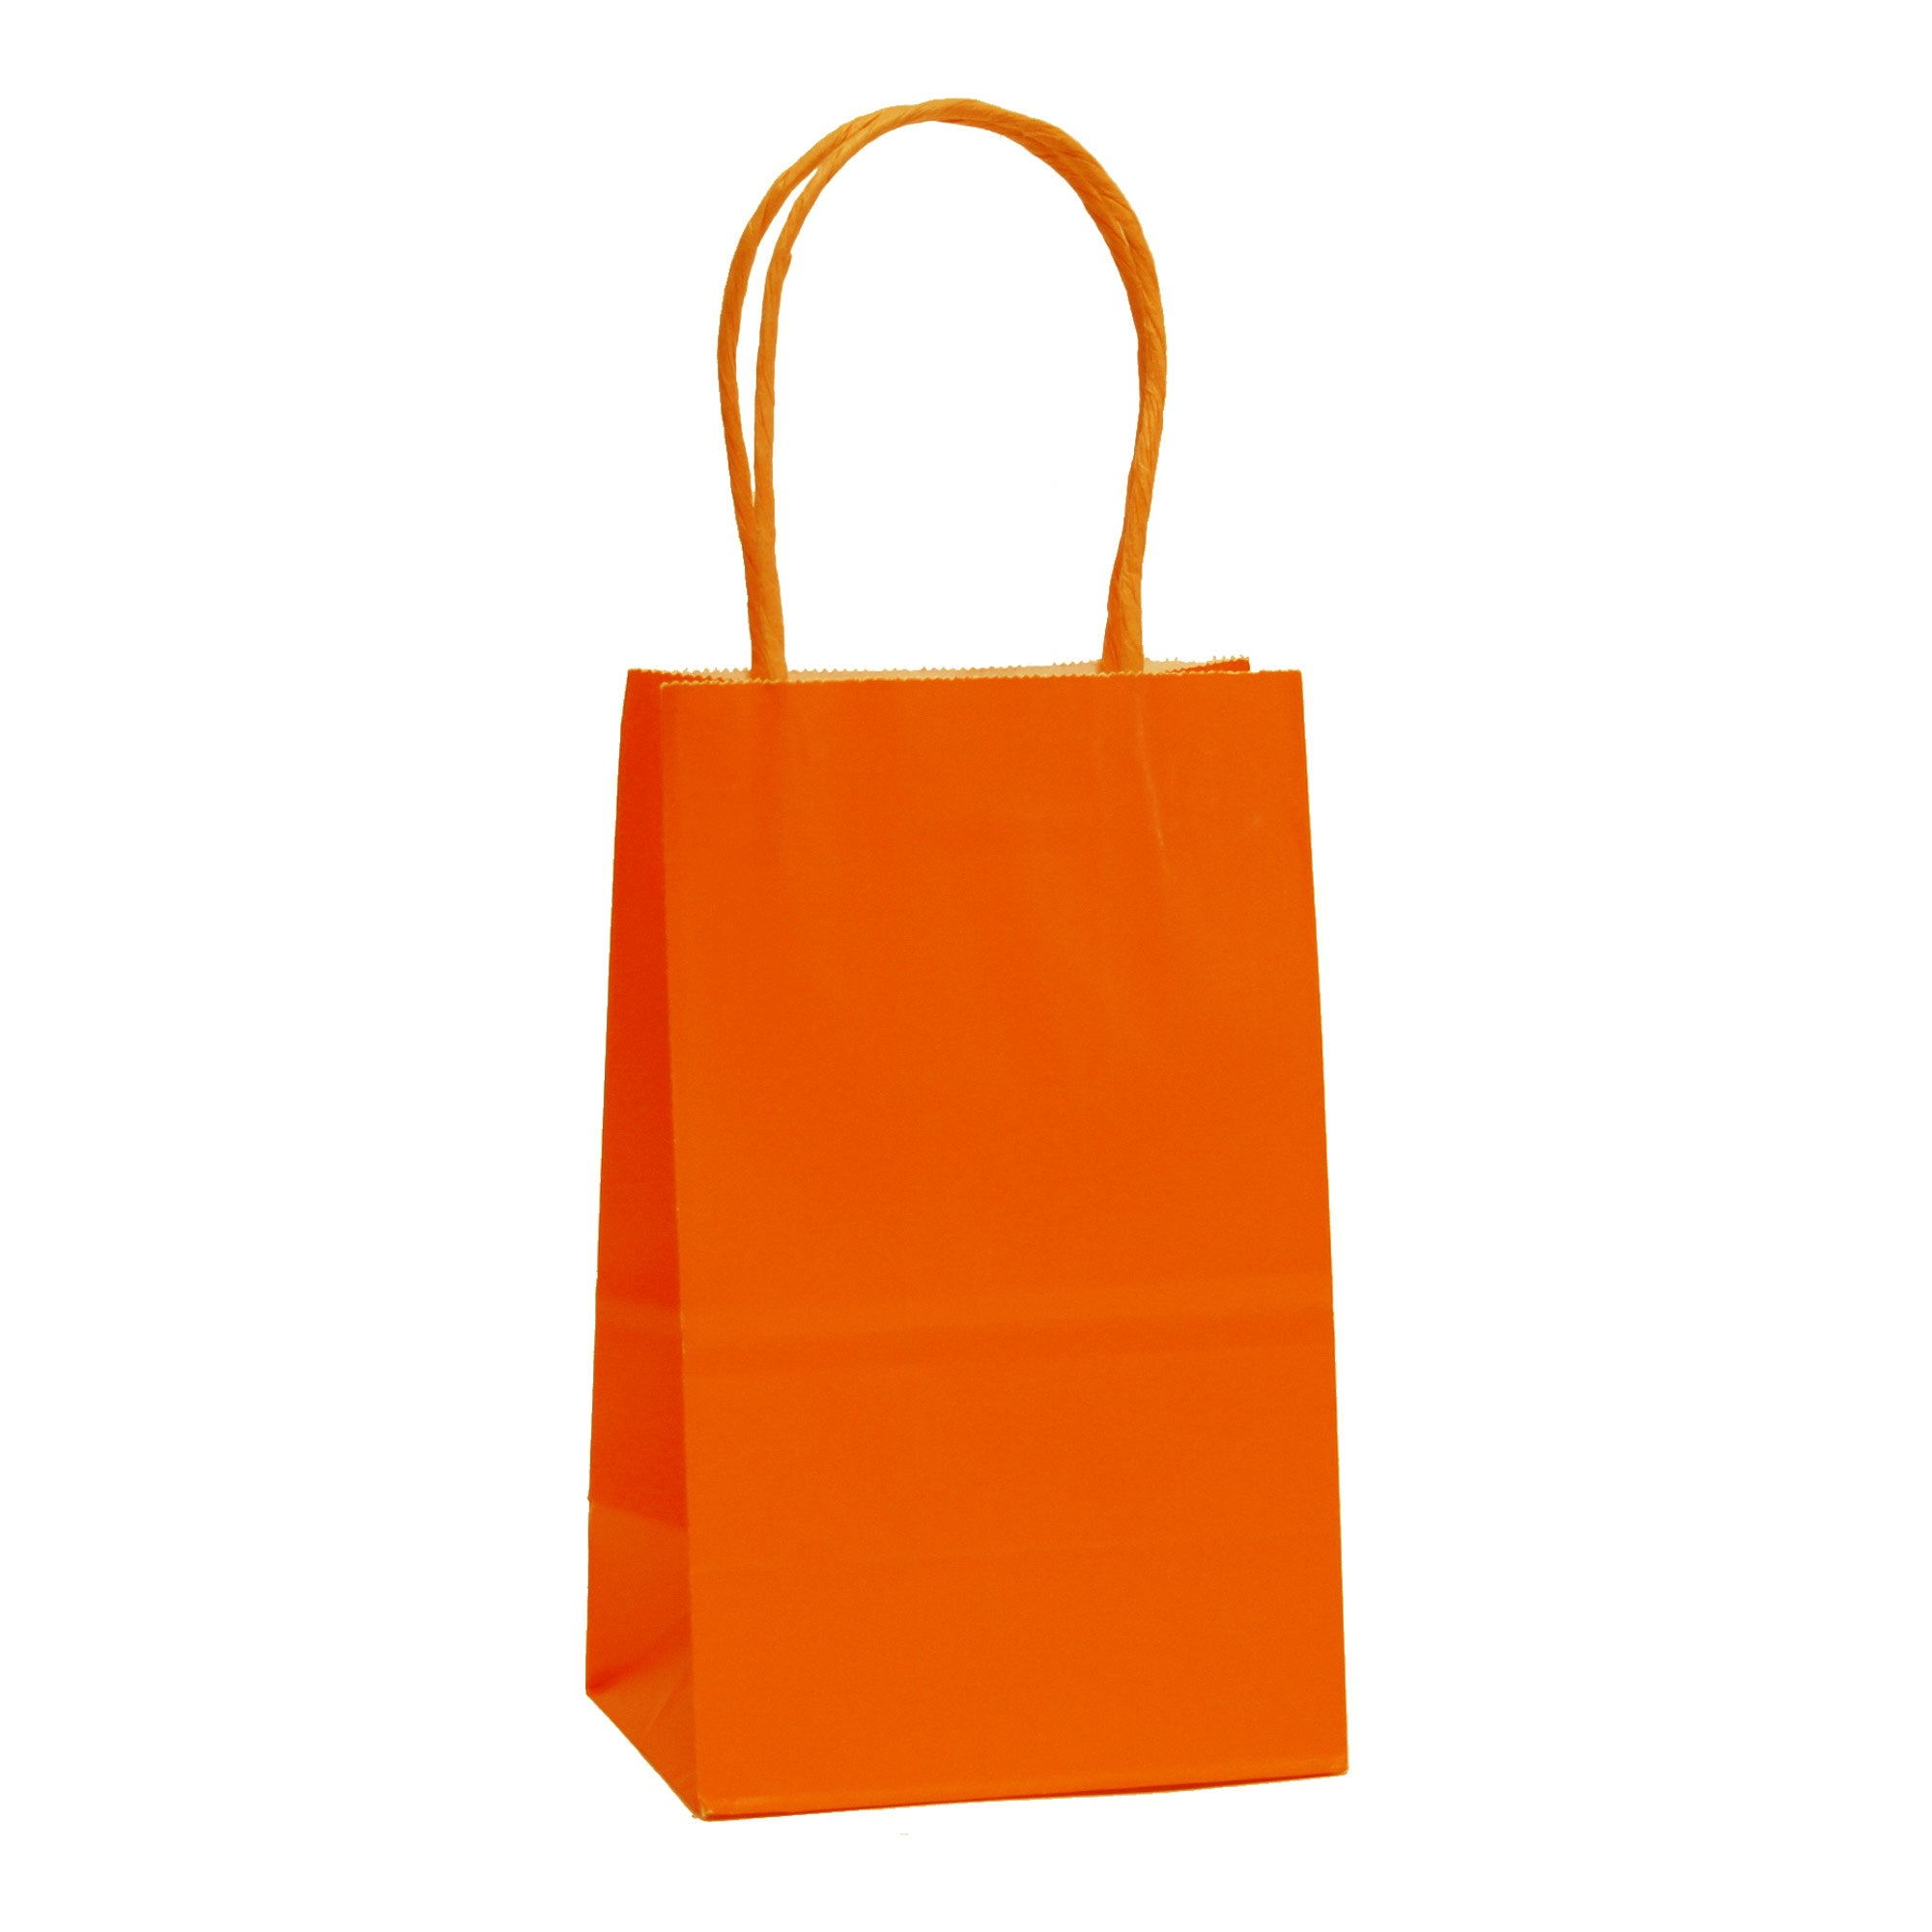 [Free Shipping] Halloween Edition Orange Kraft Bags